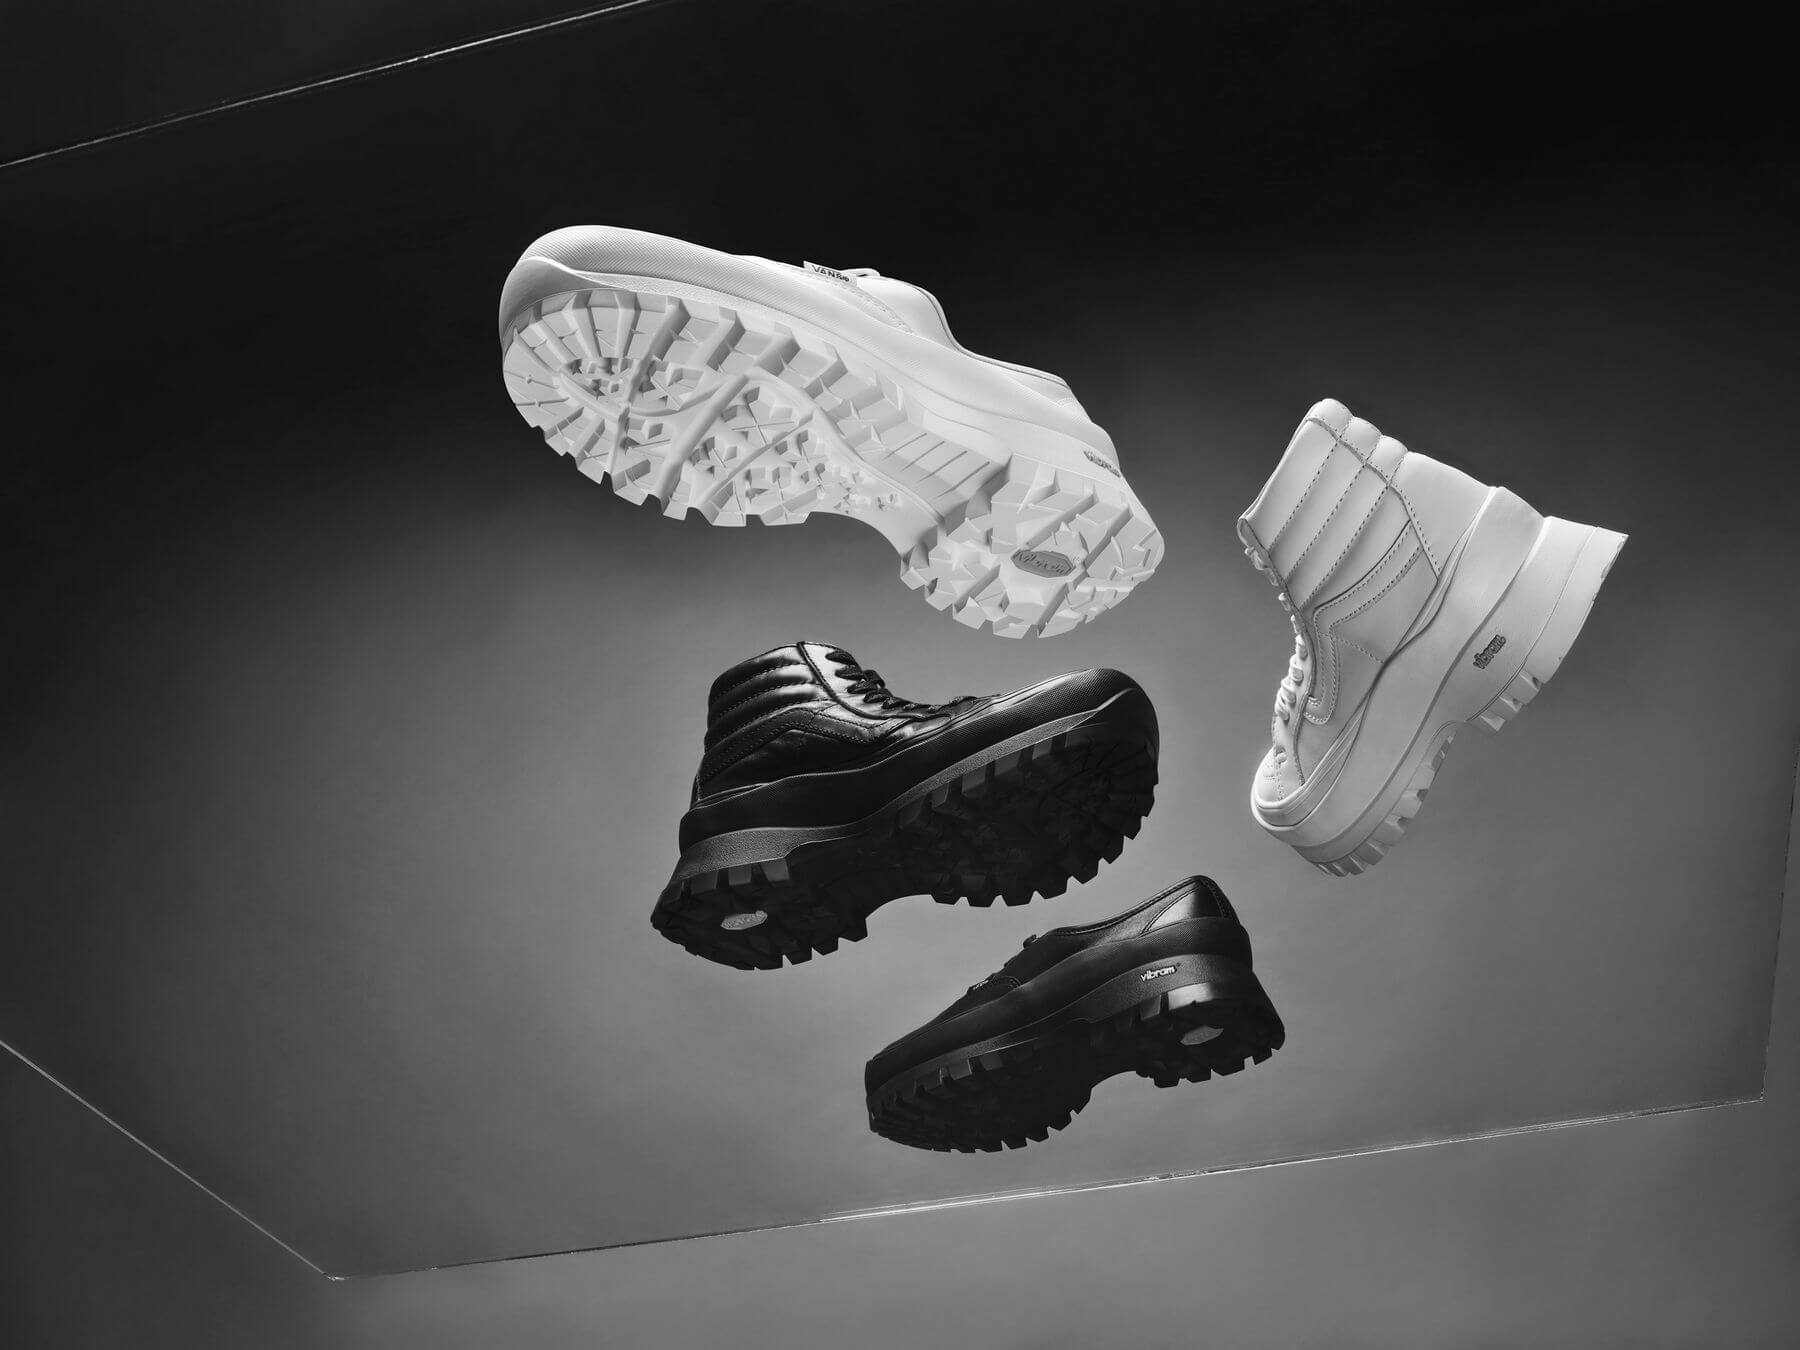 sneaker collection drop - Vault by Vans x Vibram - Collection feat. Sk8-Hi &UAAuthentic - black & white